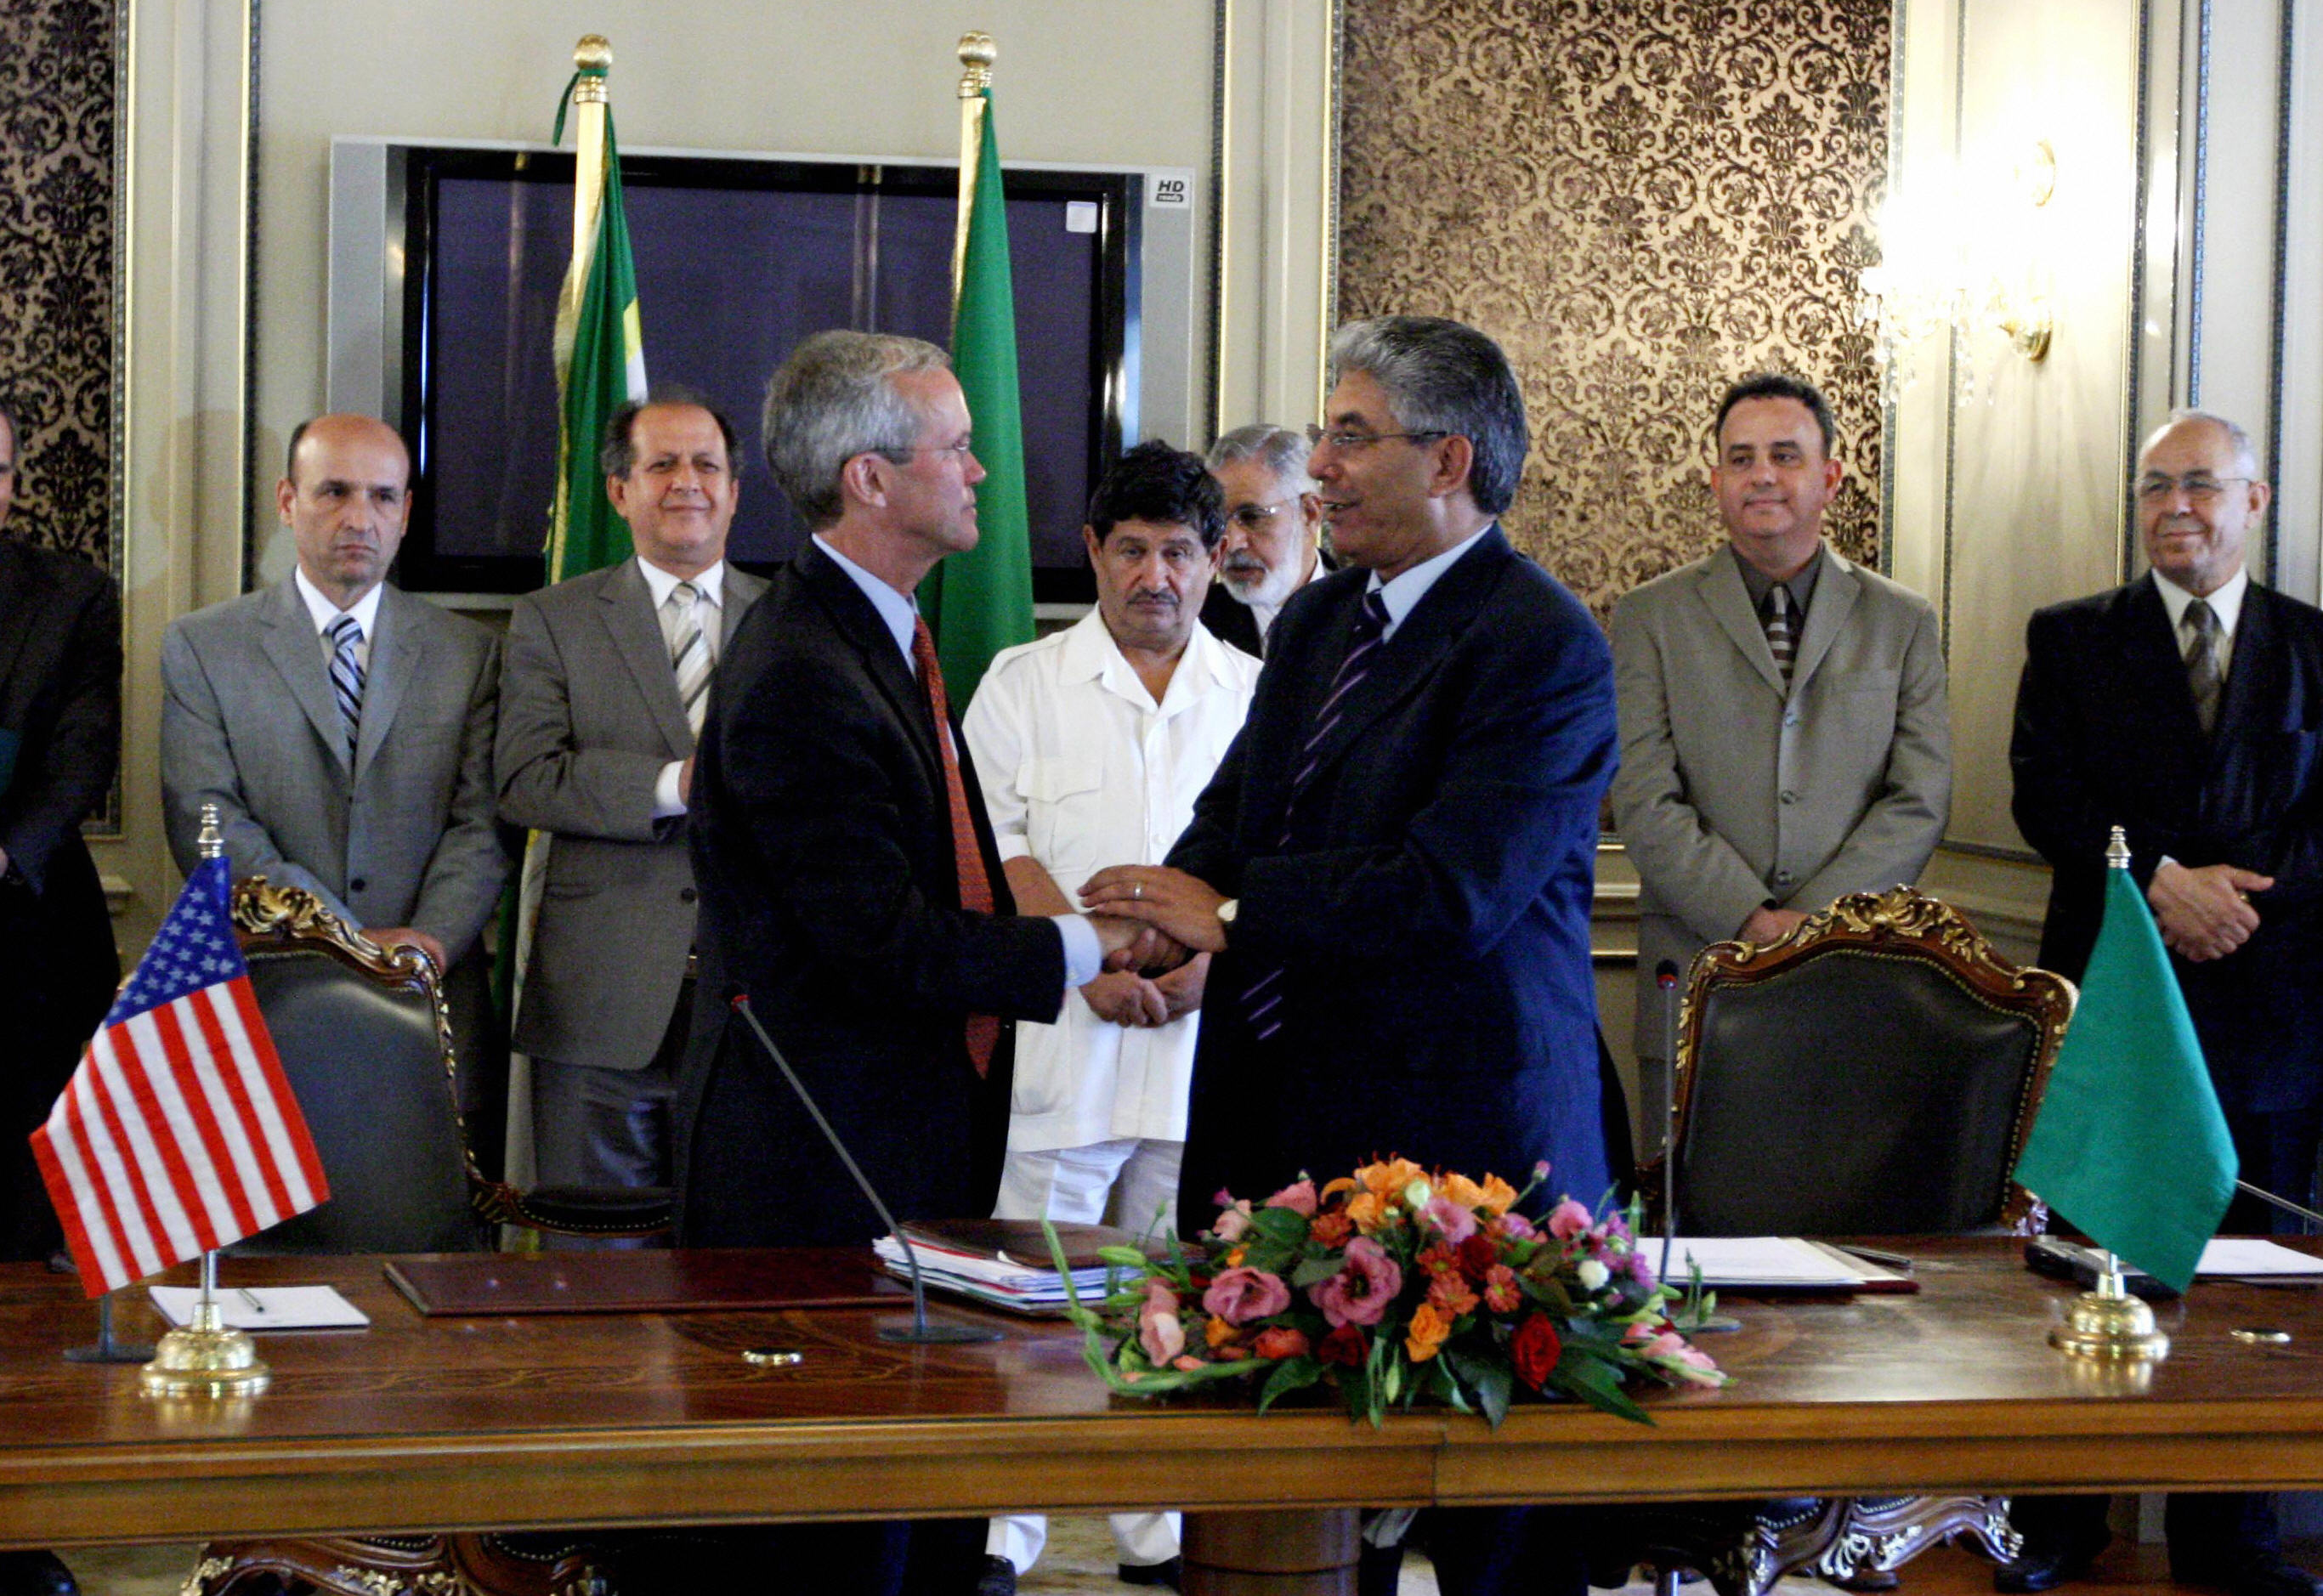 US Assistant Secretary of State for Near Eastern affairs David Welch (L), and Libyan Deputy Foreign Minister Ahmad Fitouri (R) shake hands after the signing of a compensation agreement between their two countries pertaining to the victims of past Libyan-US conflict in Tripoli on Aug. 14, 2008. See slide 5 above for Taryn Simon's interpretation.